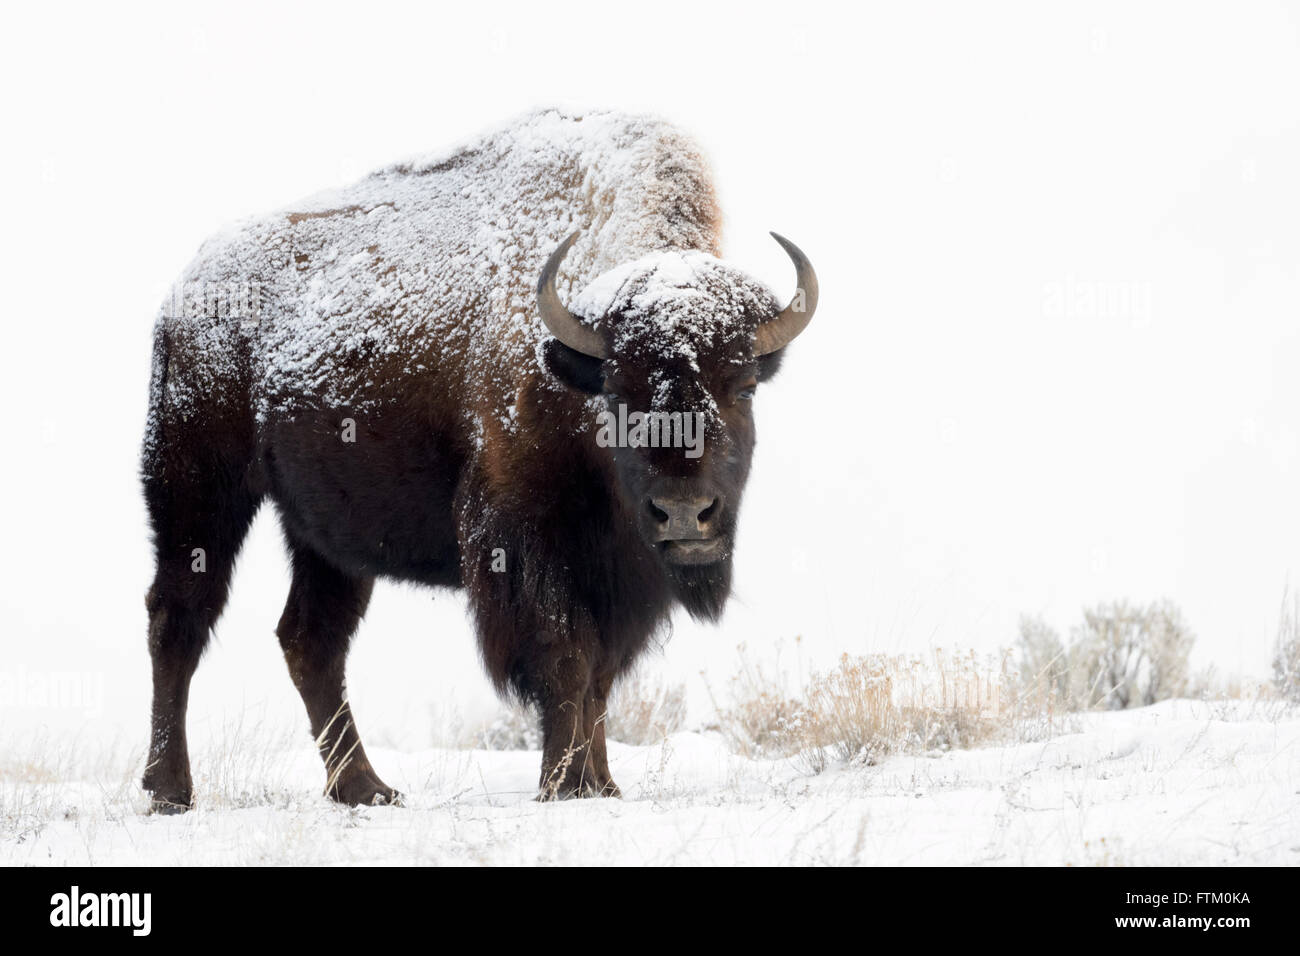 American Bison (Bison bison), standing in snow, Lamar Valley, Yellowstone National Park, Wyoming, Montana, USA - Stock Image